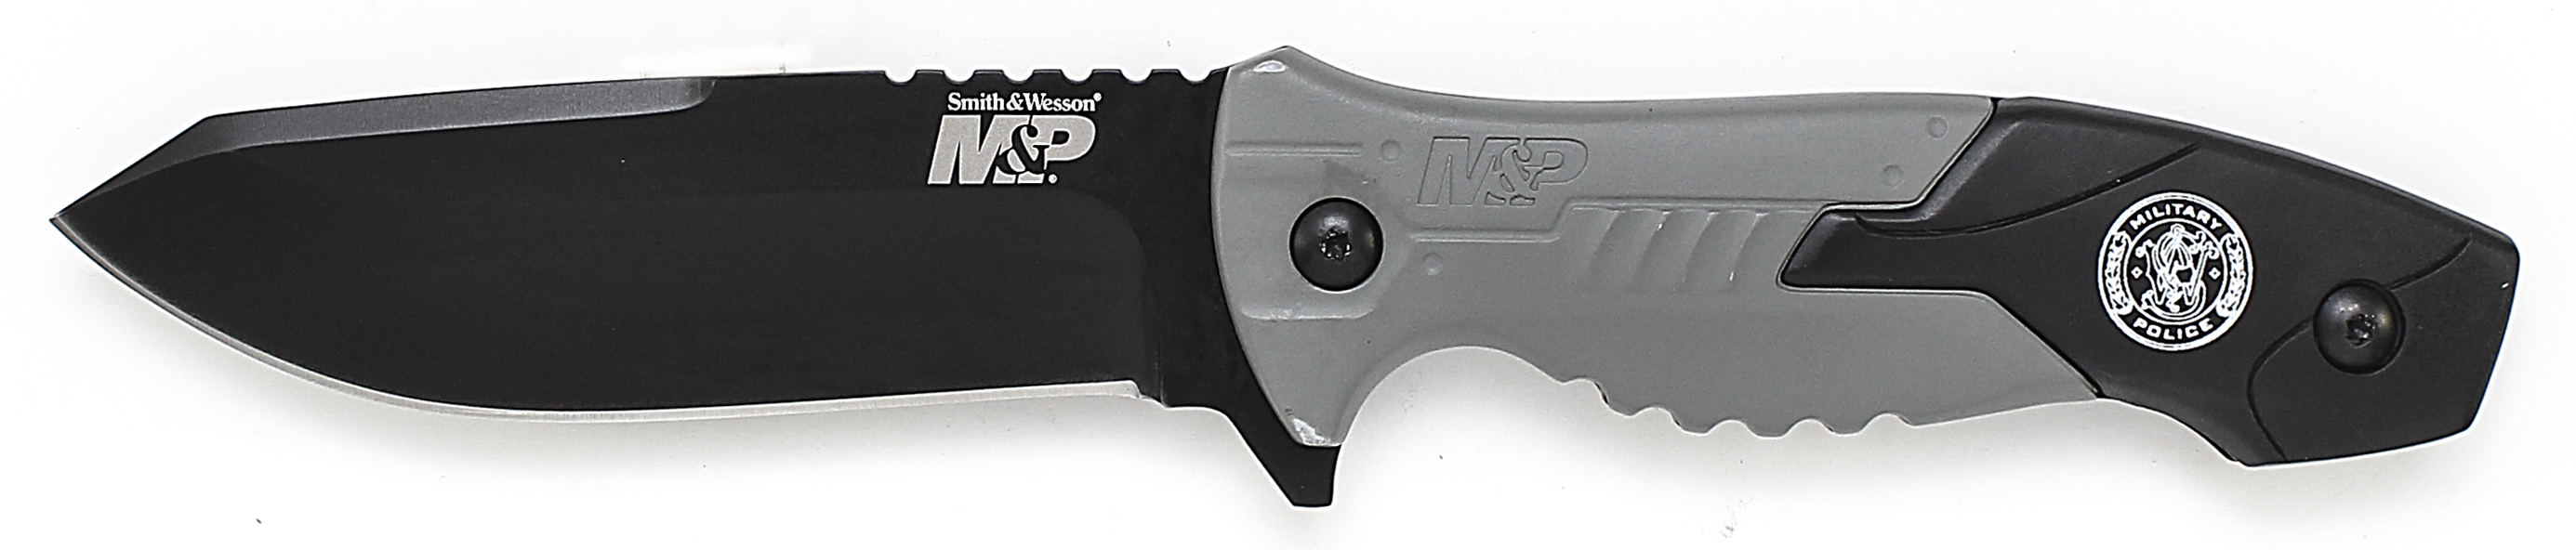 SWMPF2BS - Smith & Wesson M&P Full Tang Tanto Fixed Blade, Aluminum & Rubber Handle, M.O.L.L.E. Compatible Belt Sheath